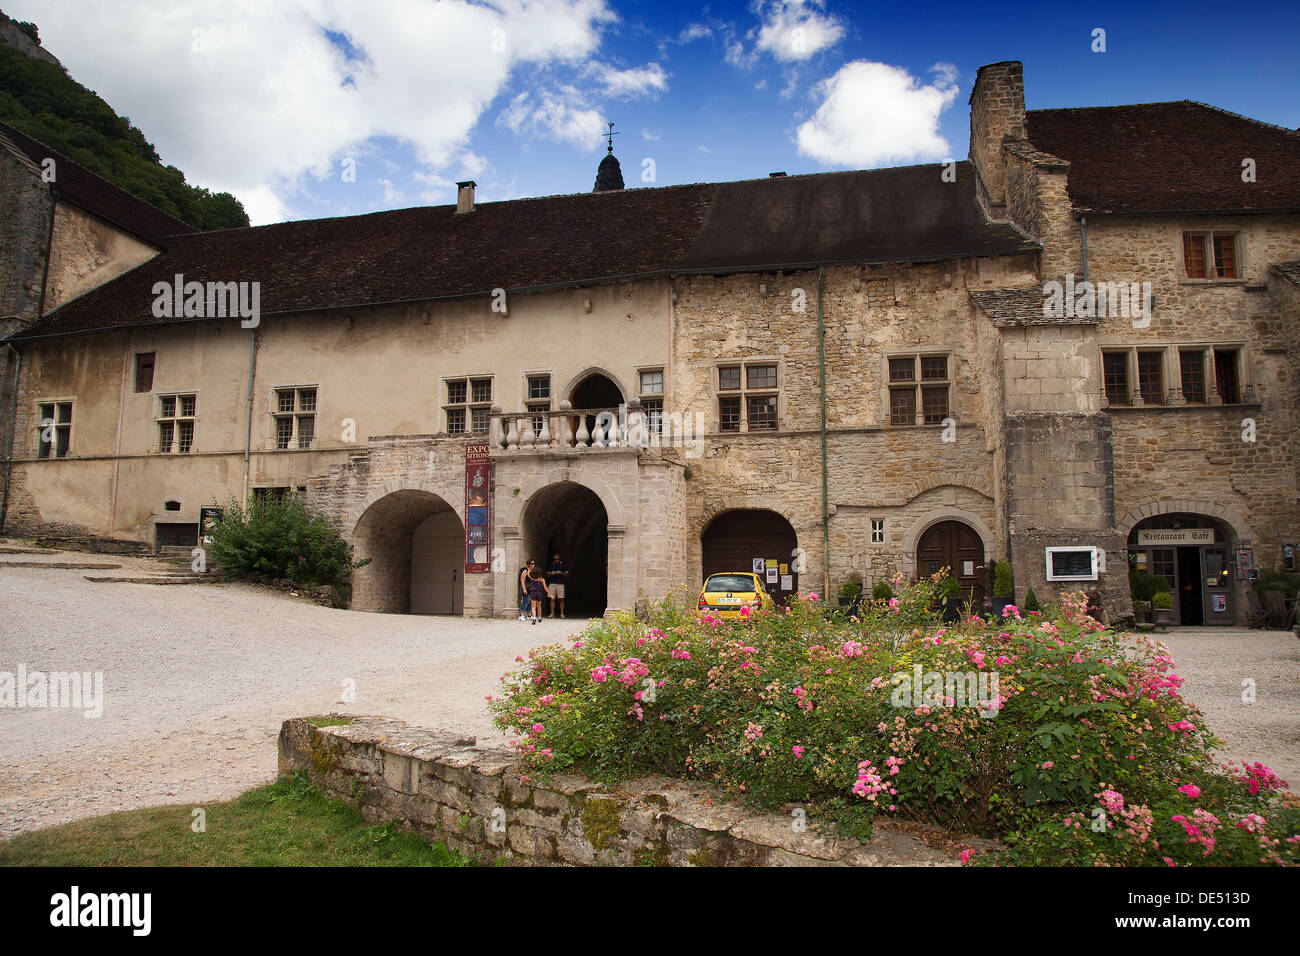 Abbey of Saint-Peter in Baume les Messieurs, Jura region of France - Stock Image